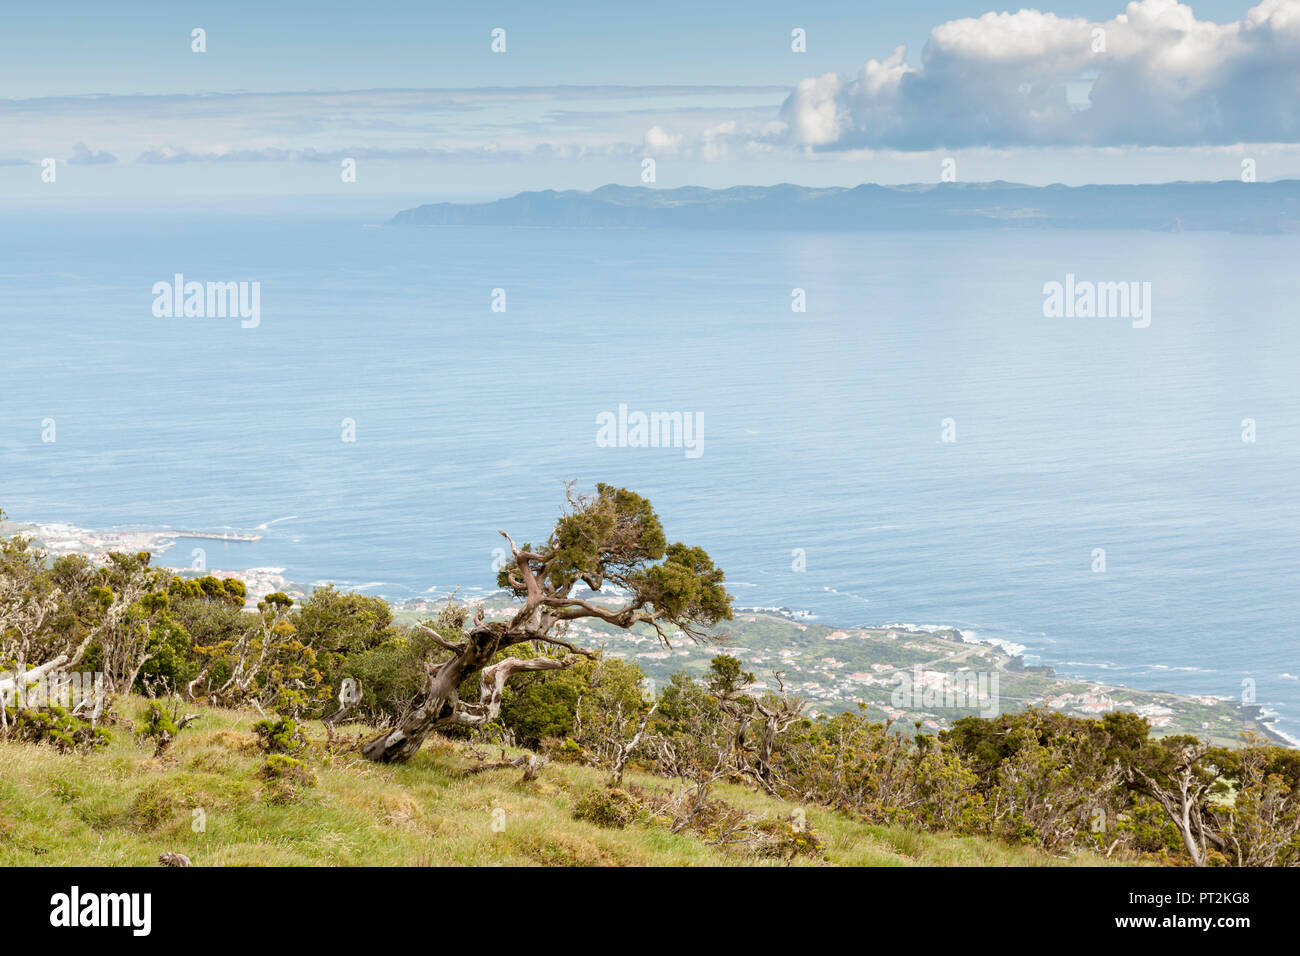 View from the ridge of the island Pico, underlying coast with windblown trees and neighboring island Sao Jorge - Stock Image